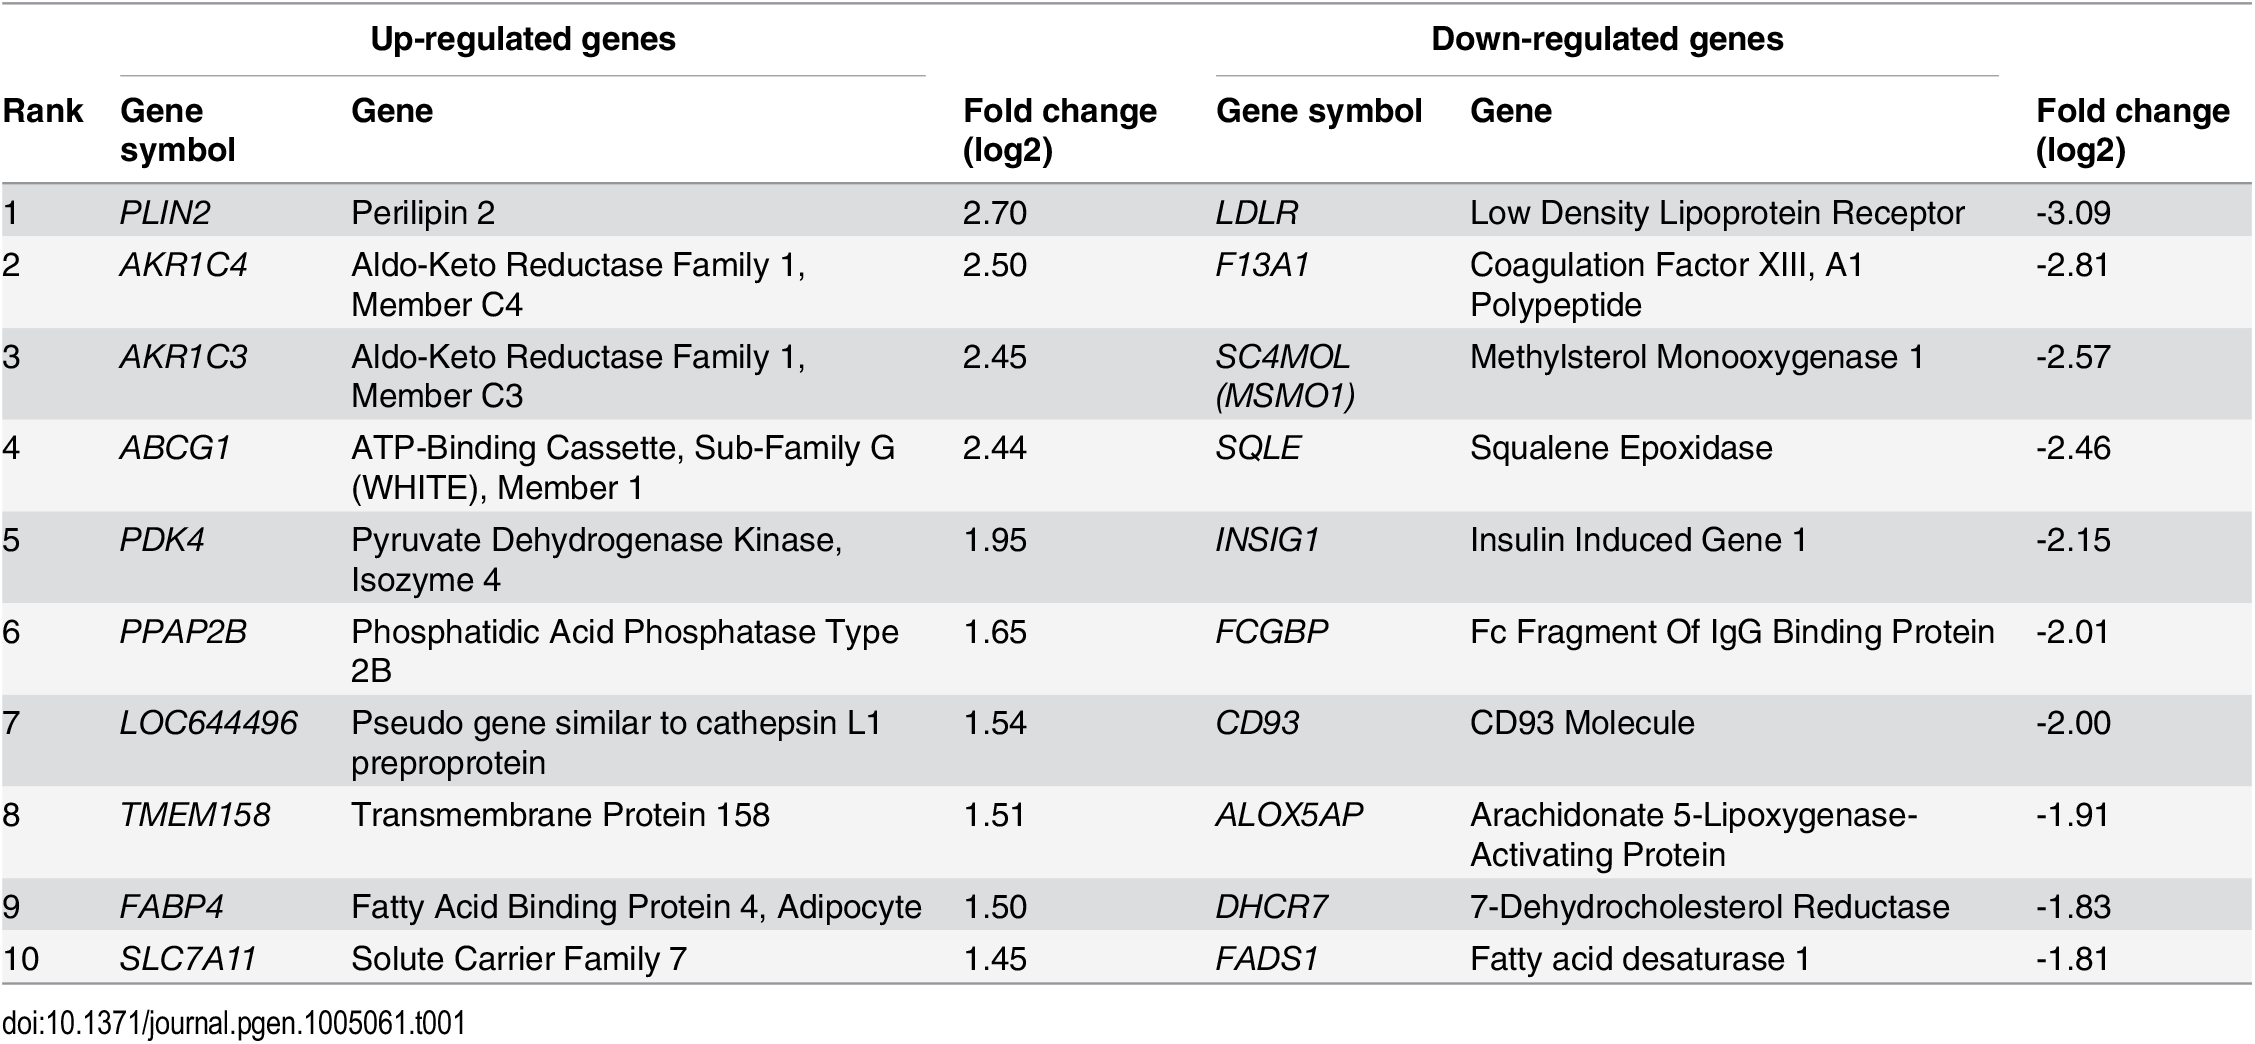 Top 10 most up-regulated and down-regulated genes during oxLDL-induced foam cell formation.